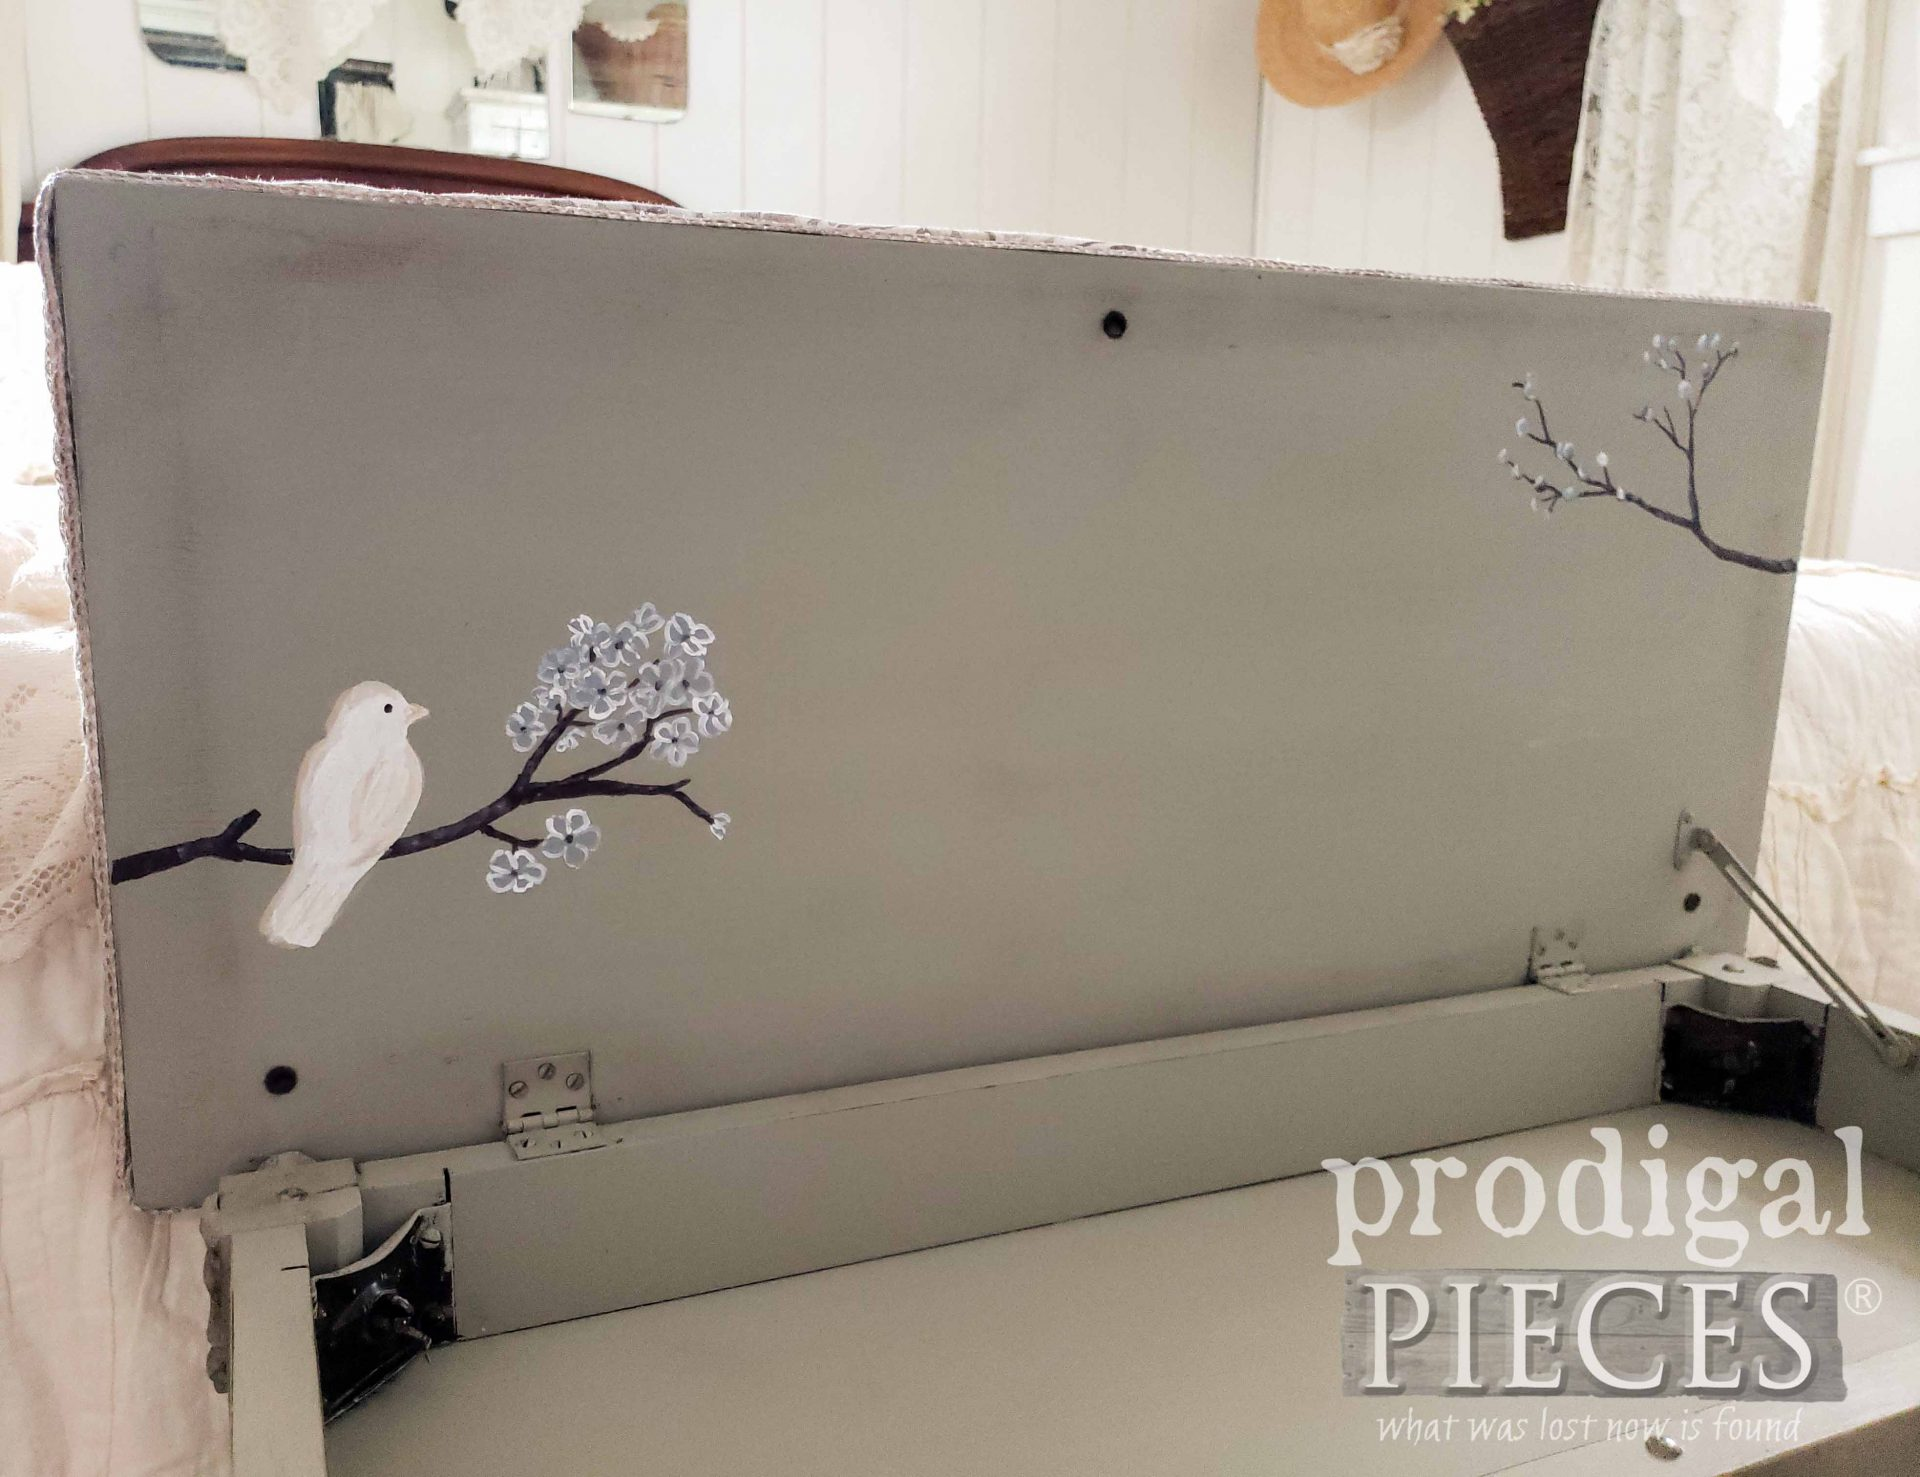 Hand-Painted Piano Bench with Upholstered Top by Larissa of Prodigal Pieces | prodigalpieces.com #prodigalpieces #diy #home #homedecor #furniture #farmhouse